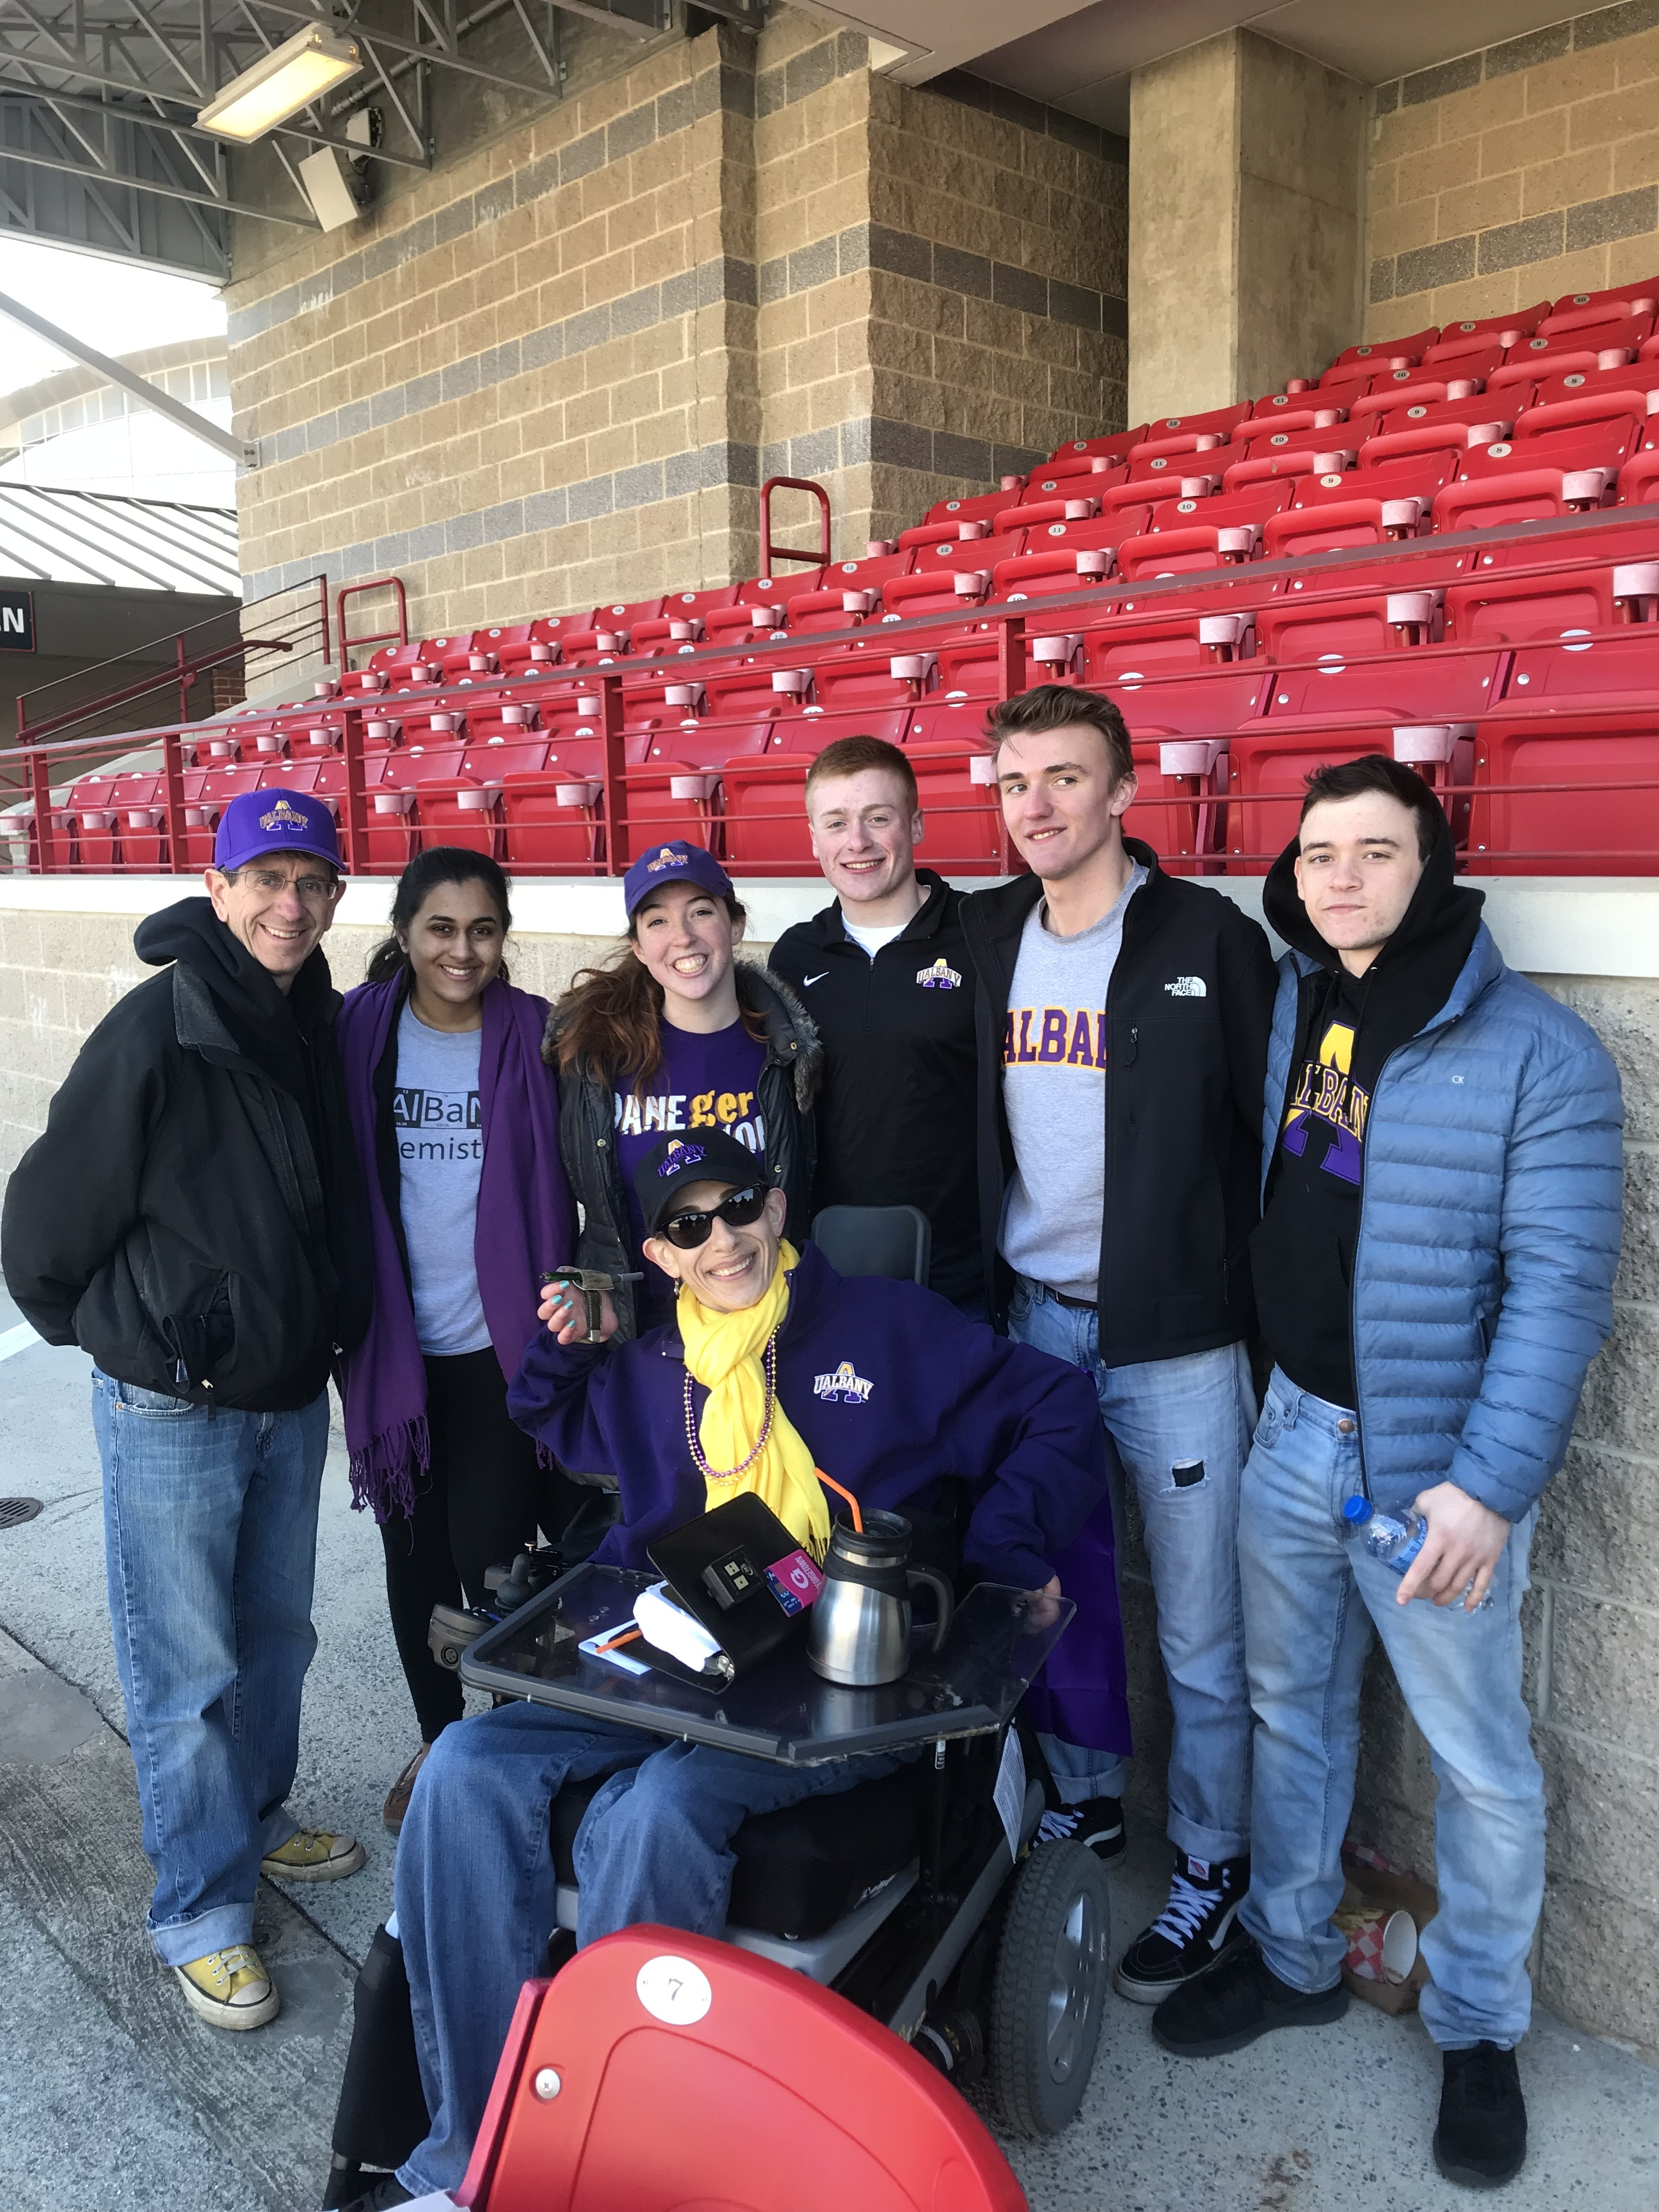 Sheri and UAlbany students at the Albany/Maryland lacrosse game, 2018.